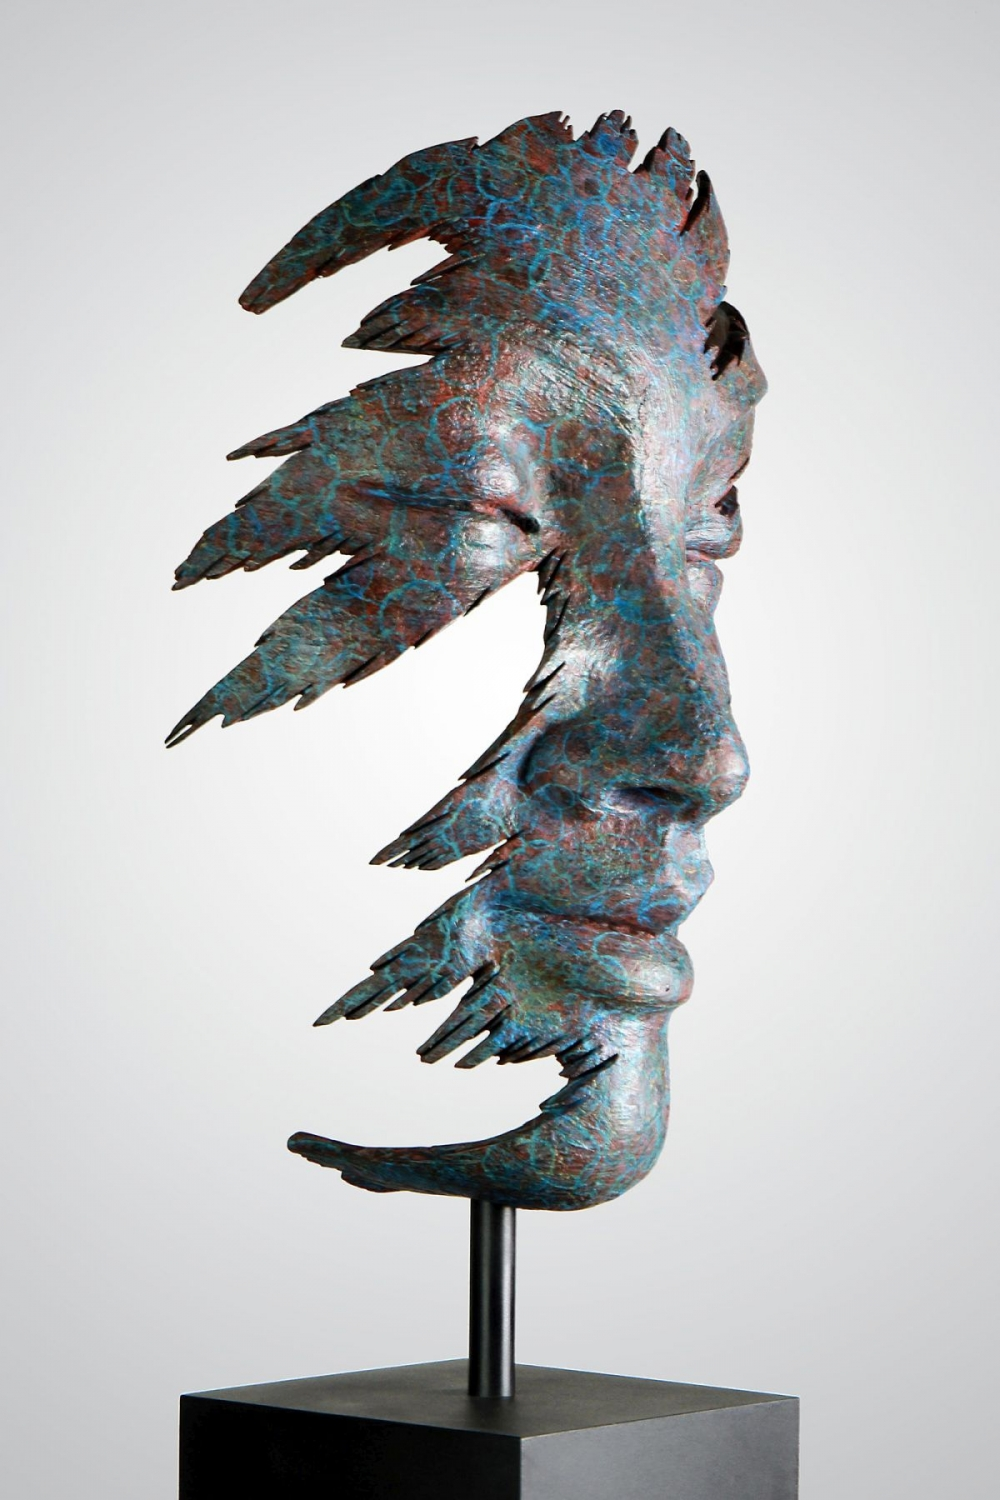 7 sculpture face anton smit